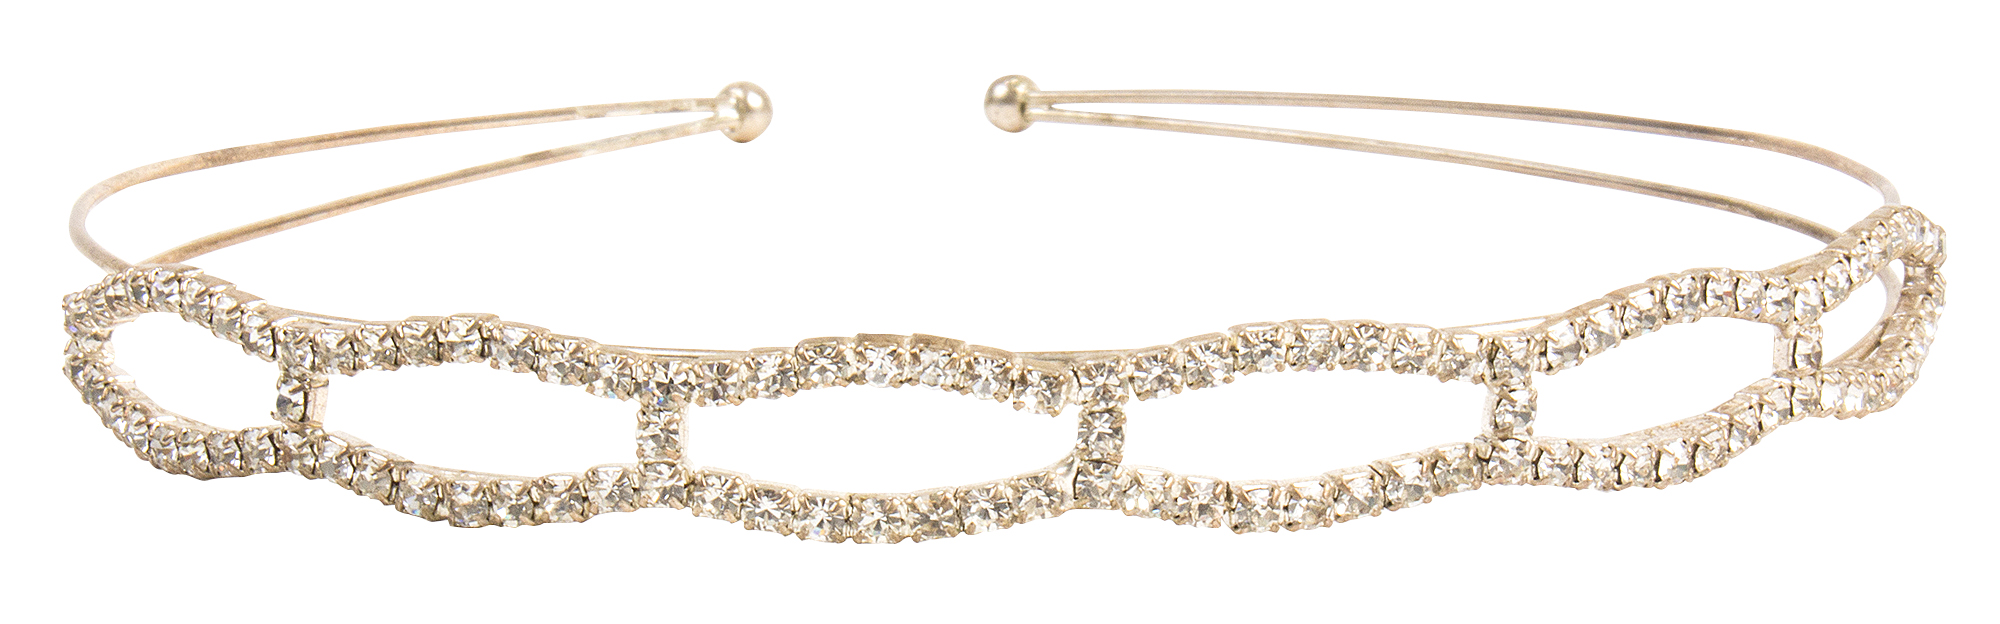 Rhinestone headband, $40 at Out of Hand